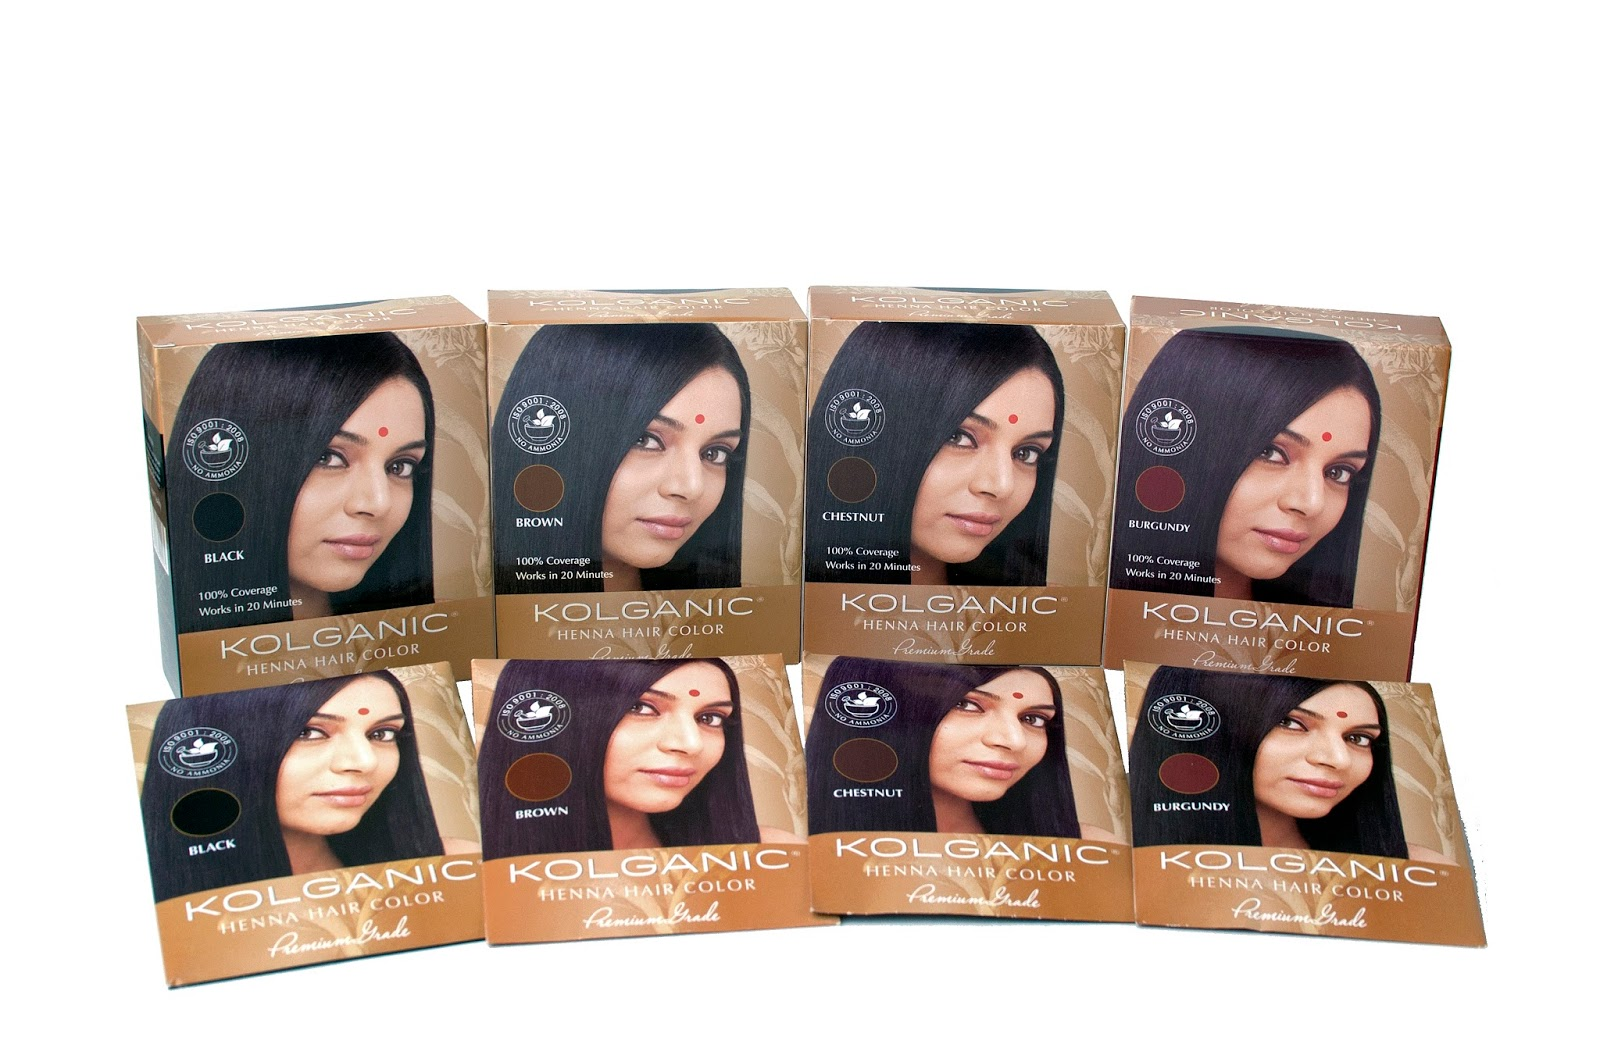 Kolganic Henna Hair Color Offers All Natural Coverage All About